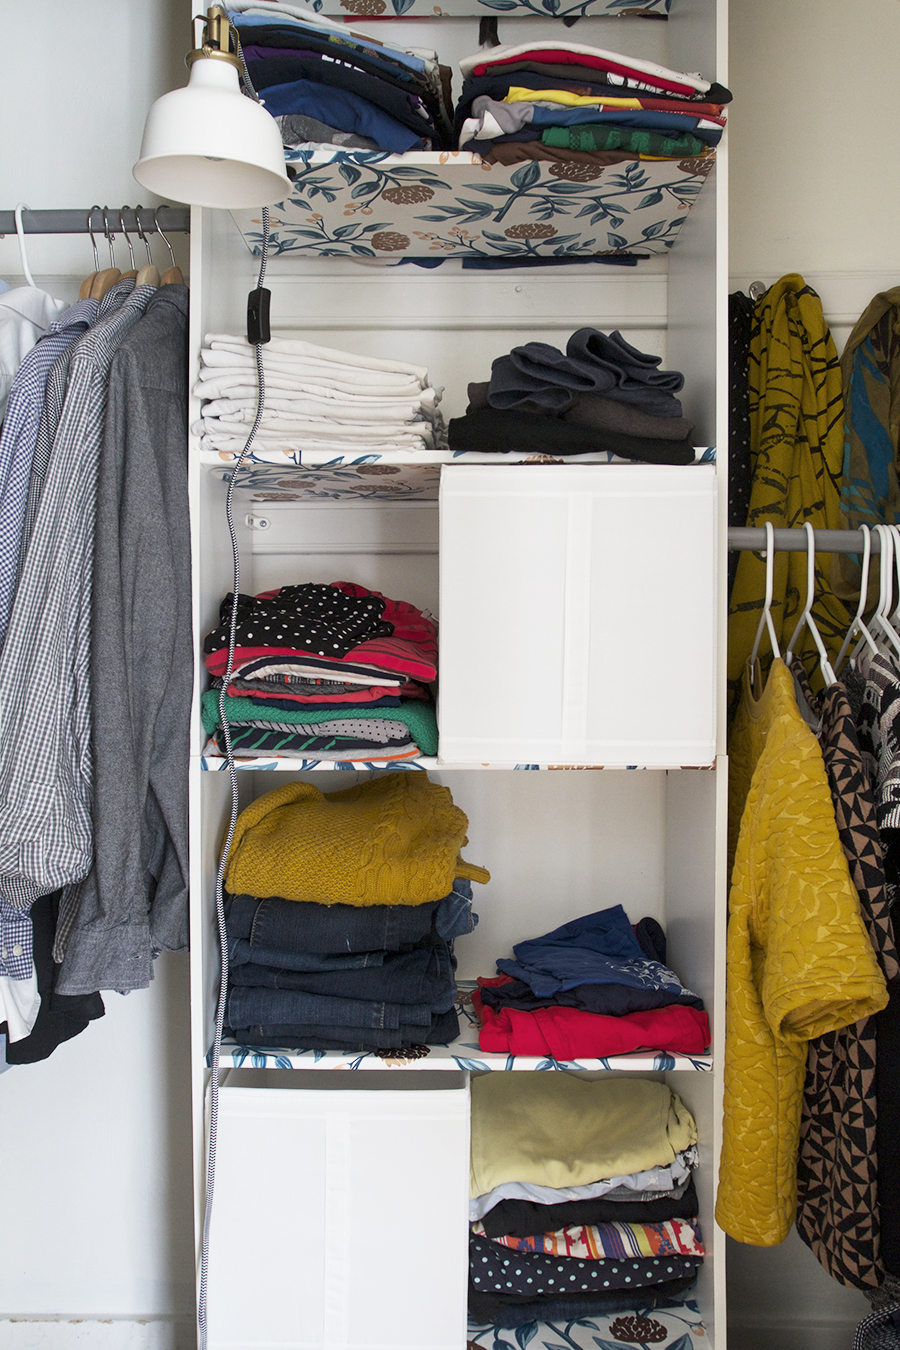 Easy Closet Clean Up, Wallpaper shelves and paint for a fresh look